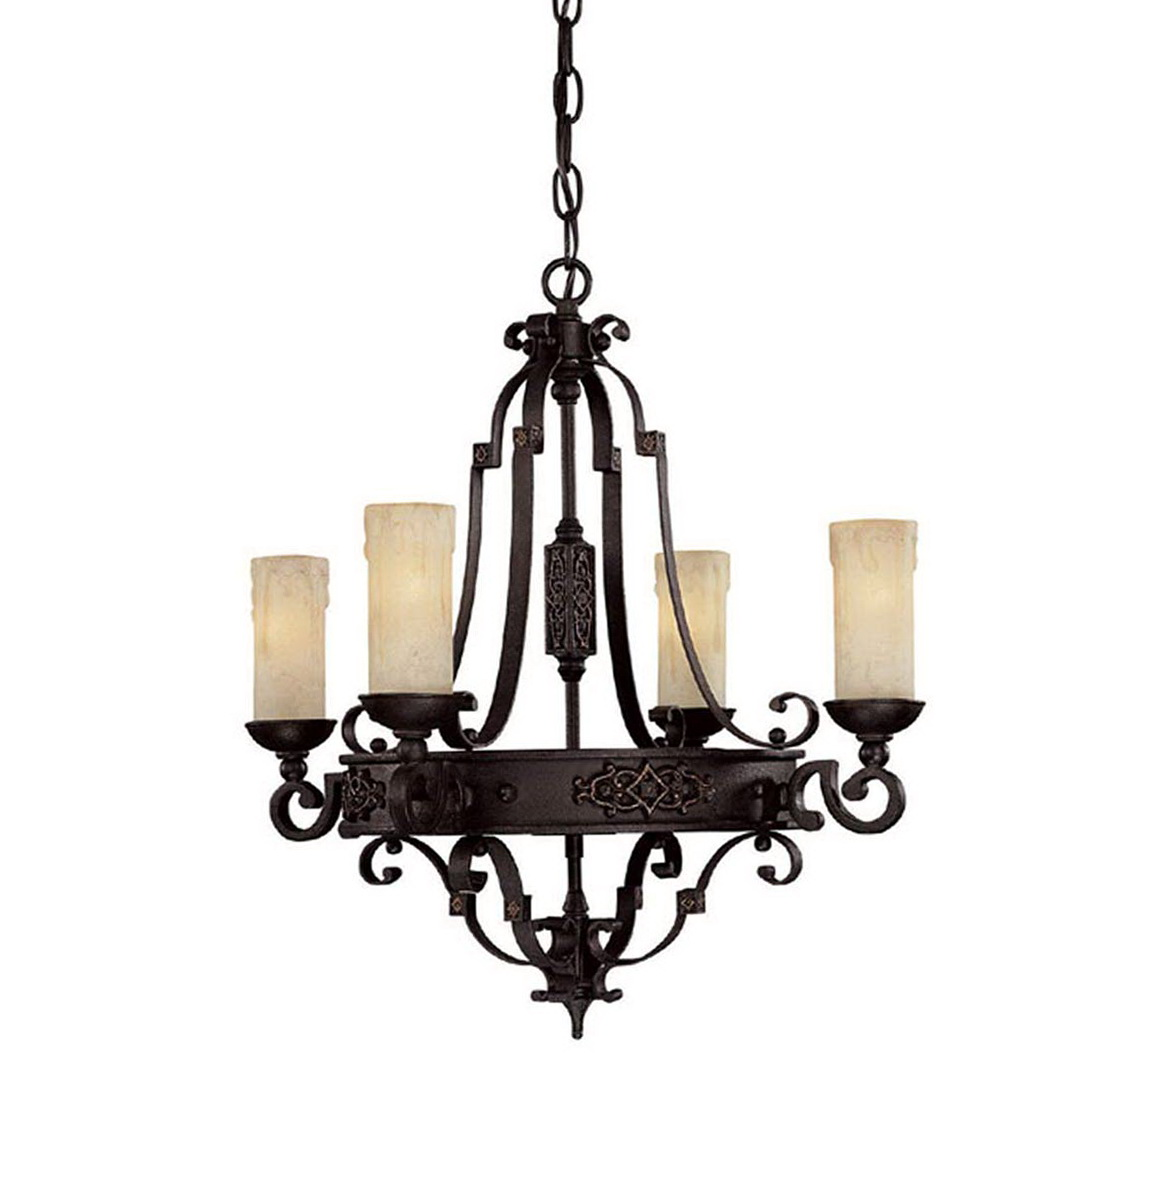 Wrought Iron Chandeliers Rustic